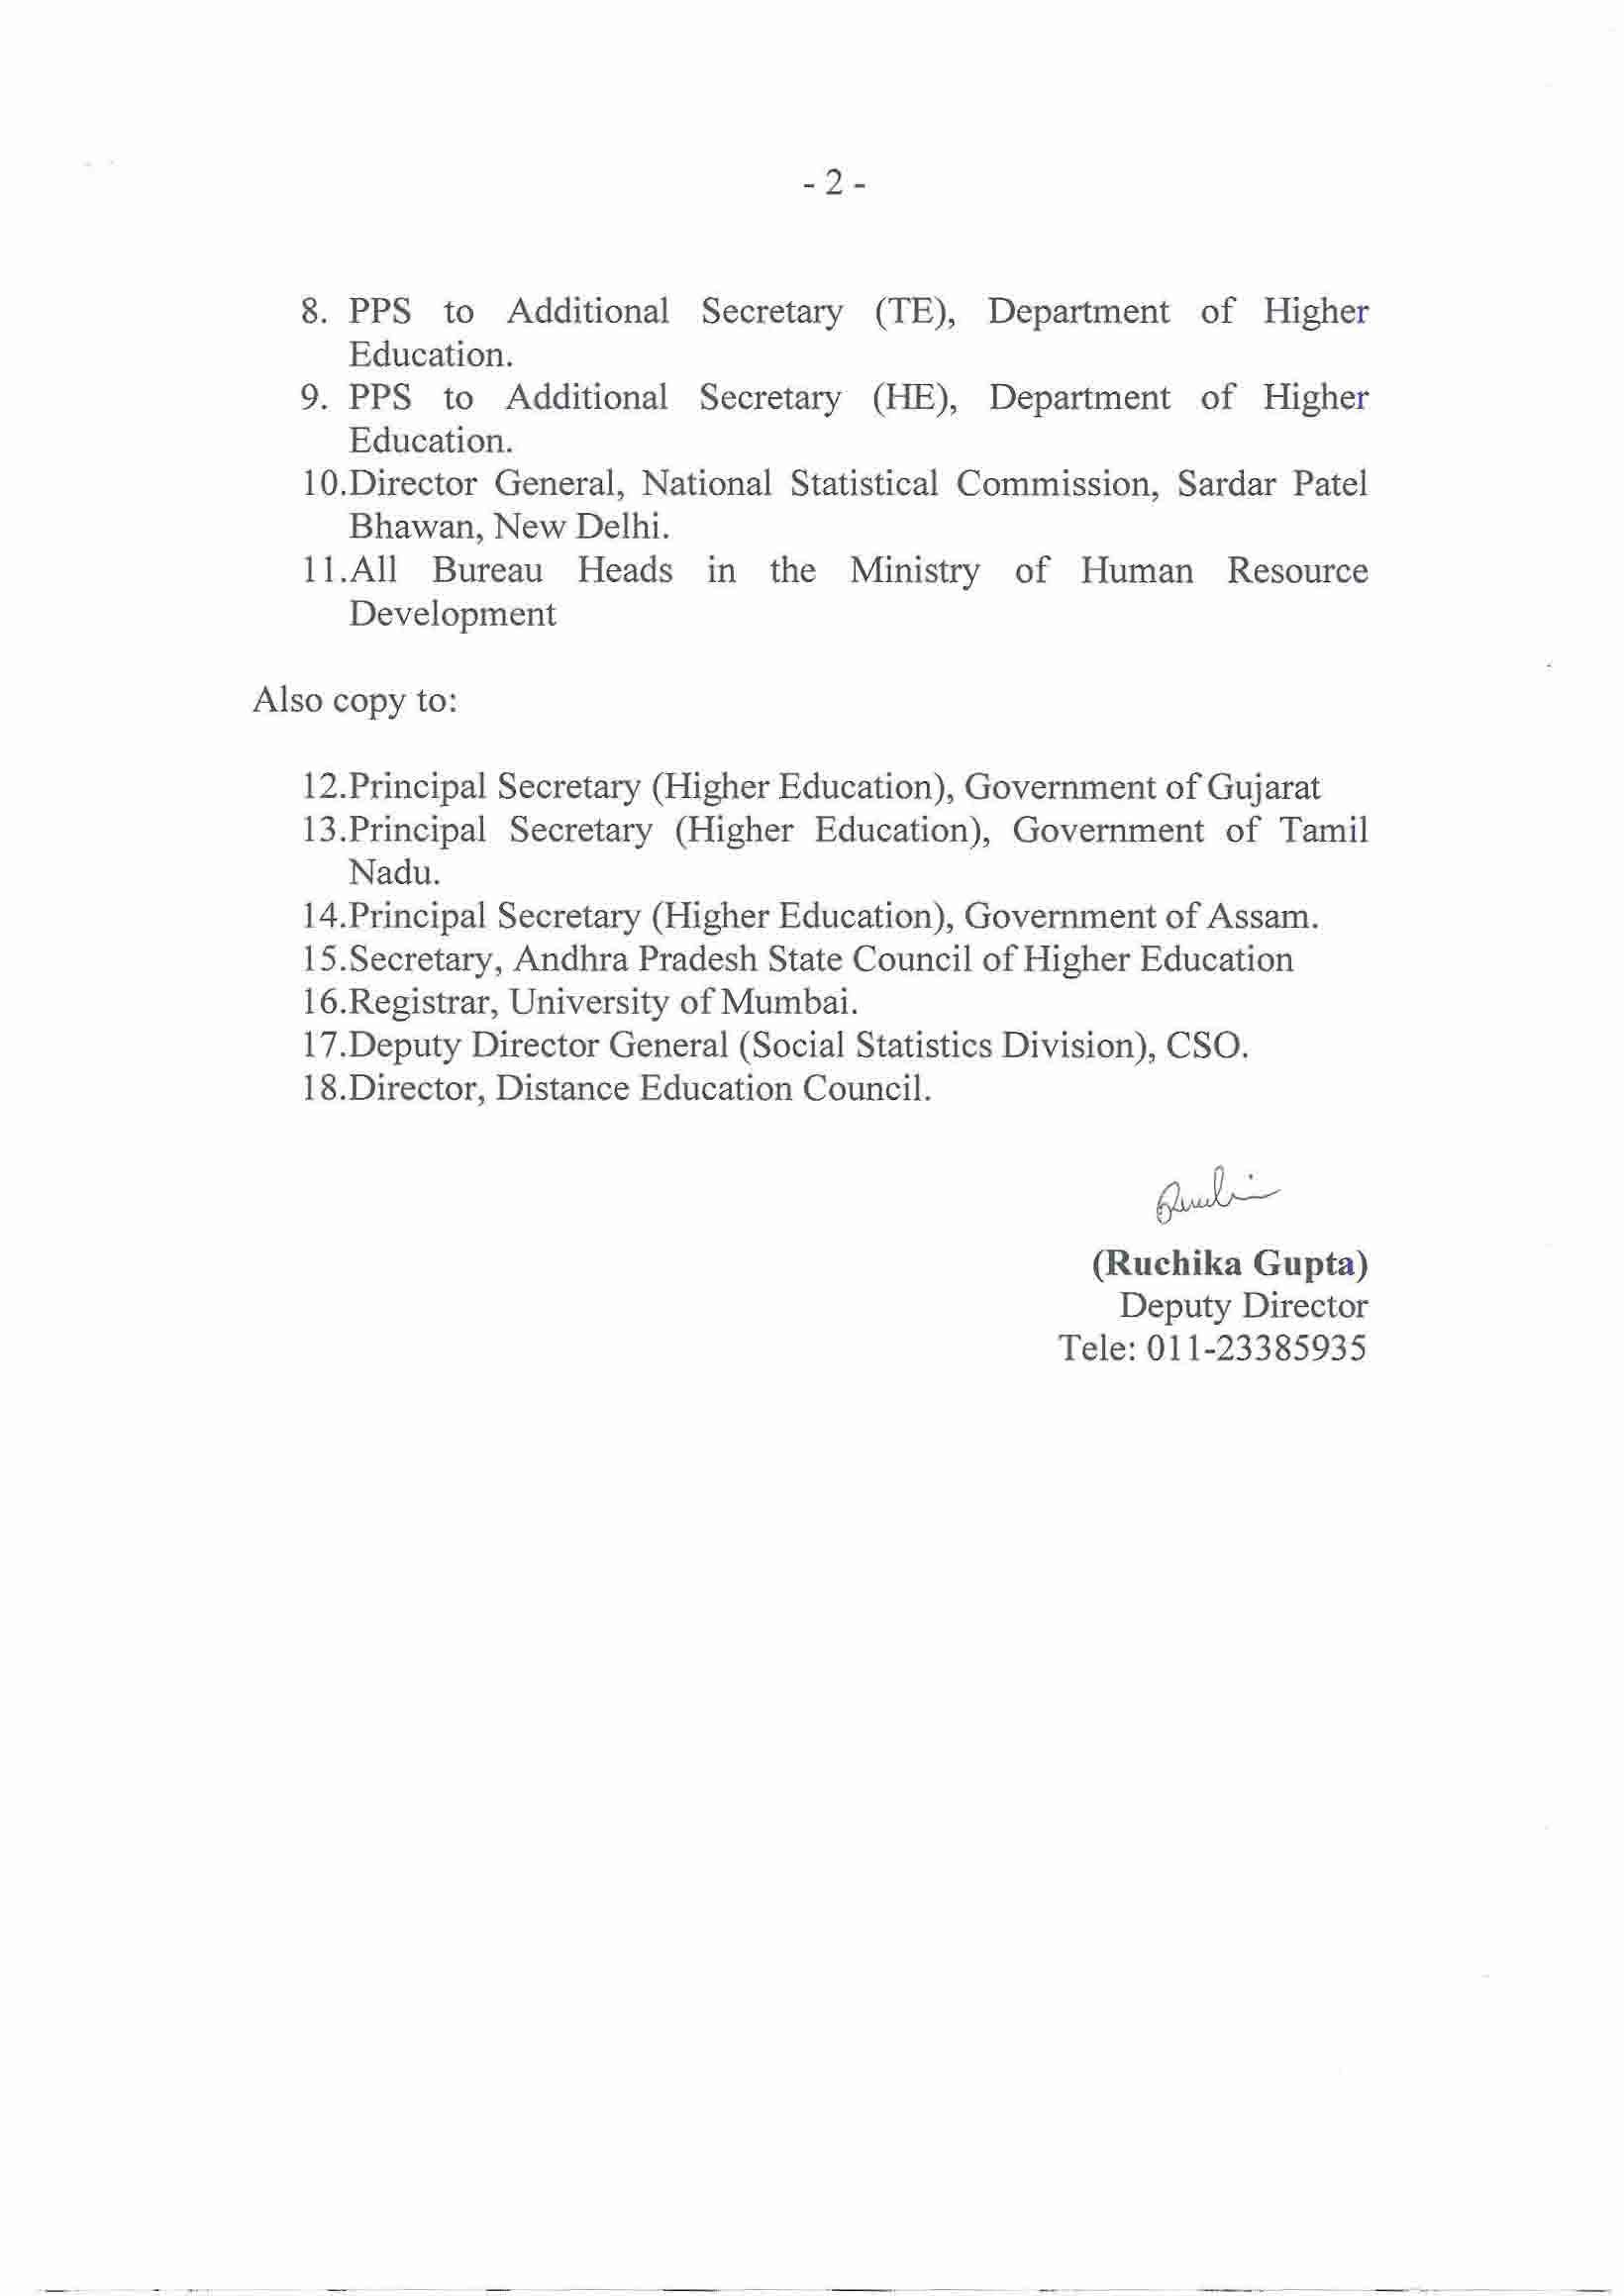 8. PPS to Additional Secretary (TE), Department of Higher Education. 9. PPS to Additional Secretary (HE), Department of Higher Education. 1O.